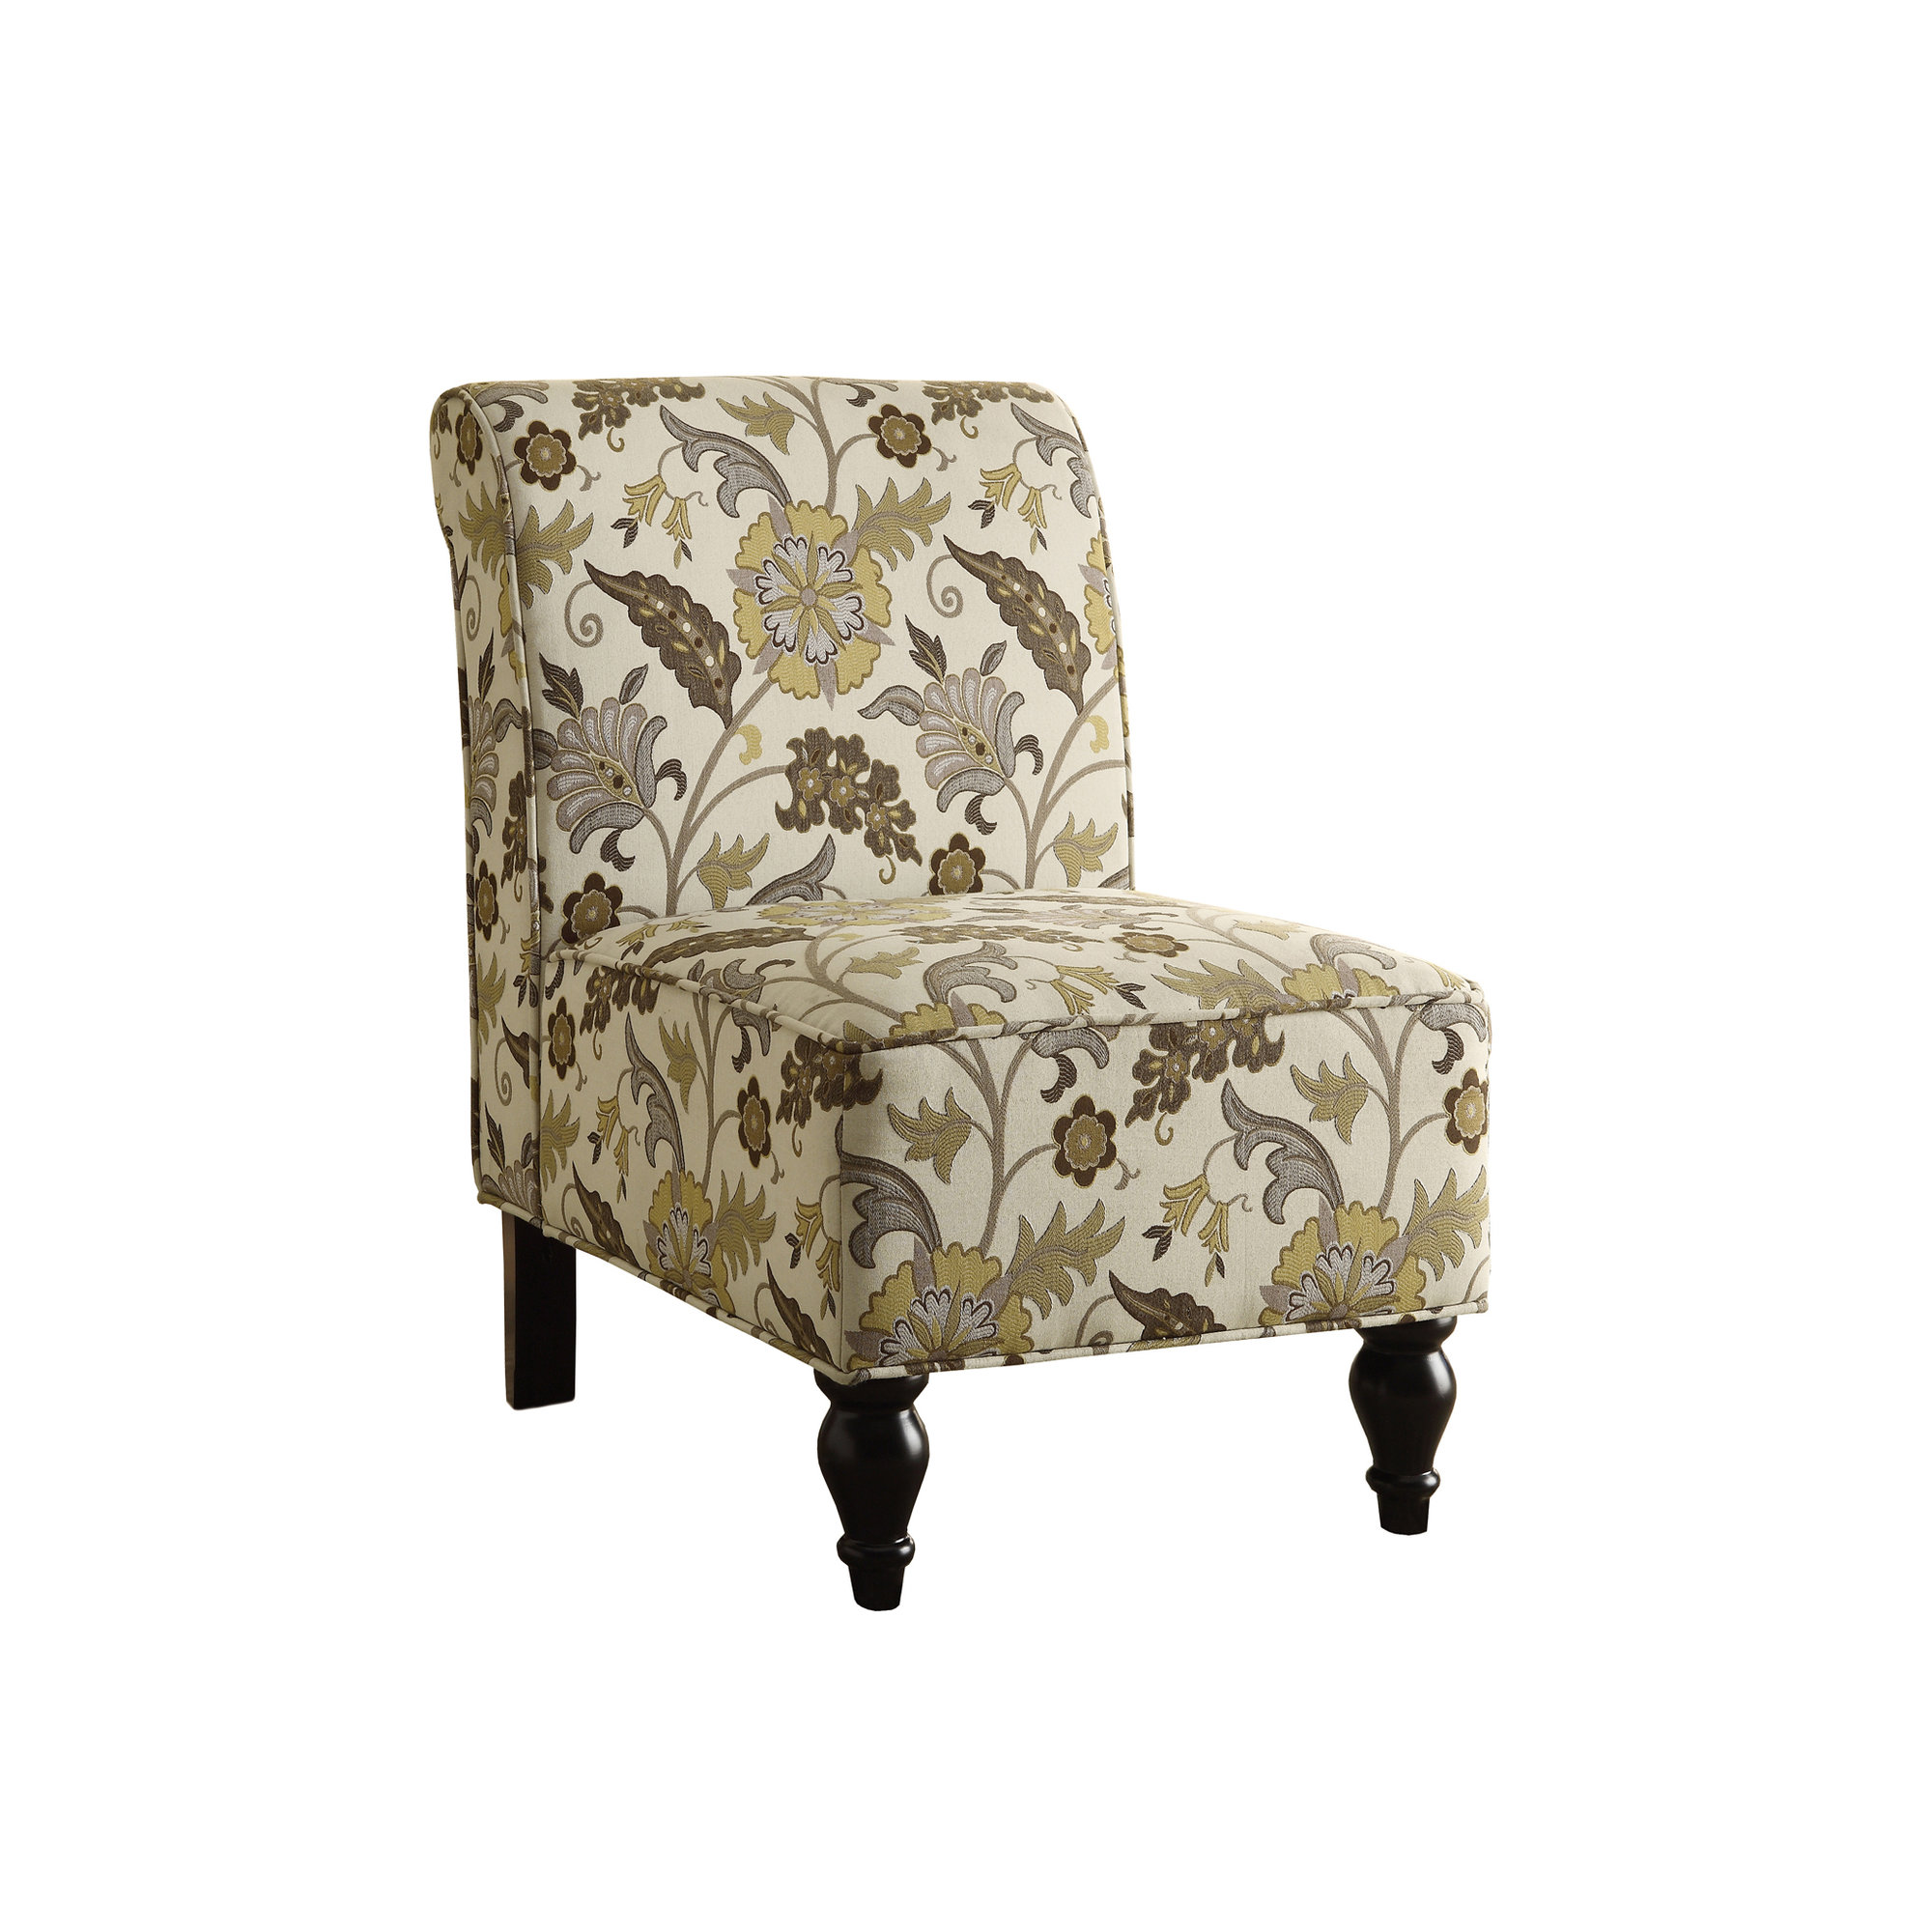 Pleasing Accent Chair Brown Gold Floral Traditional Fabric Alphanode Cool Chair Designs And Ideas Alphanodeonline